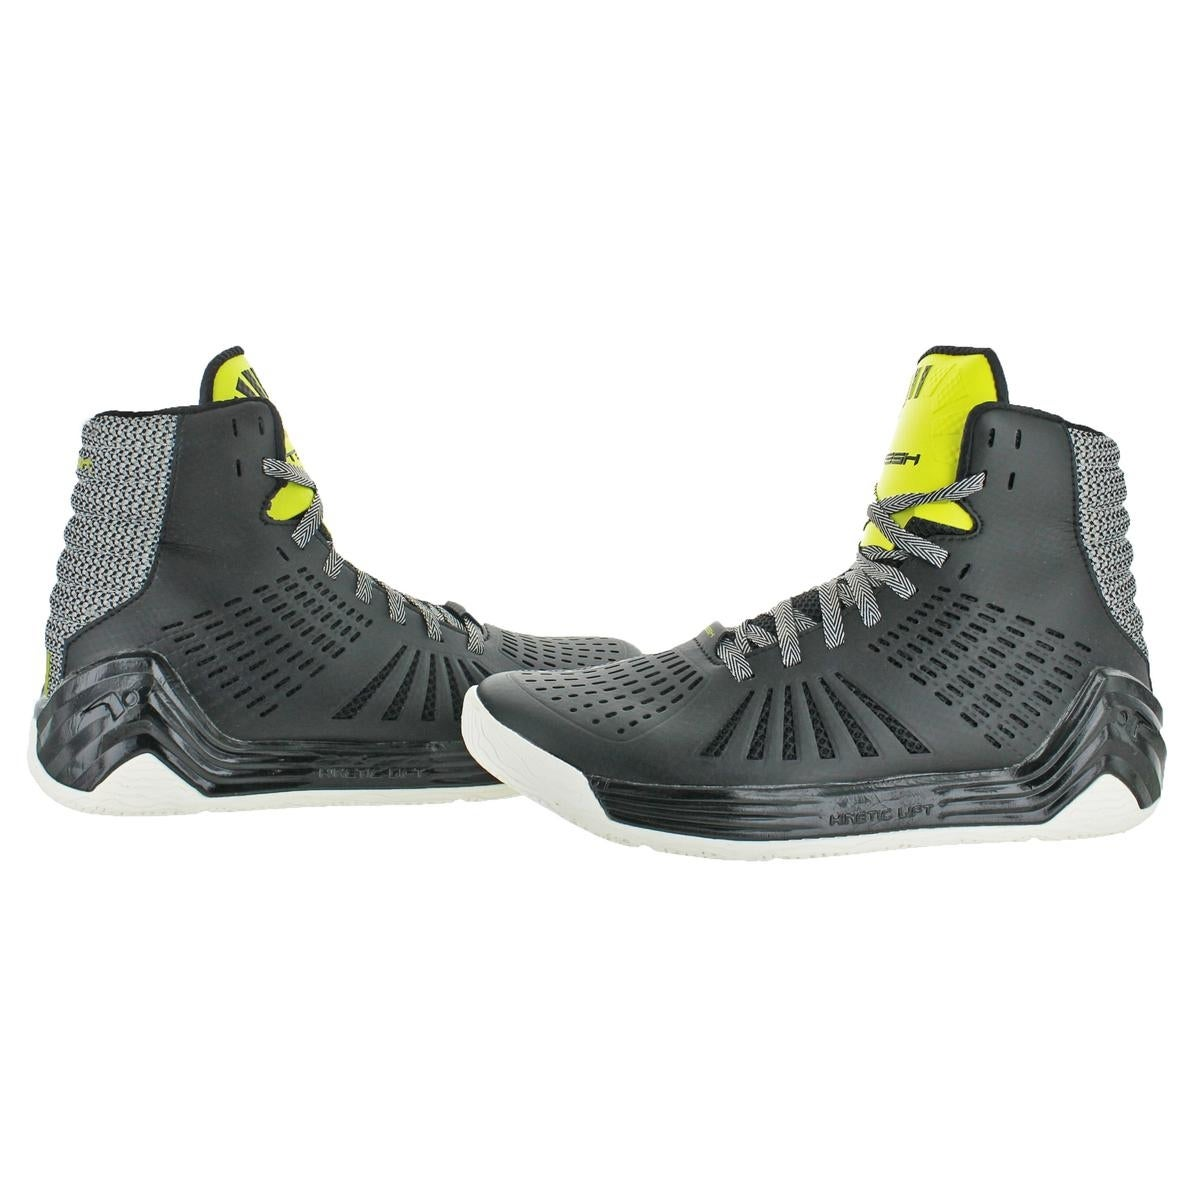 692353d7015 Shop Tesh Mens Trigger Basketball Shoes High Top Perforated - Free Shipping  On Orders Over  45 - Overstock - 22338775